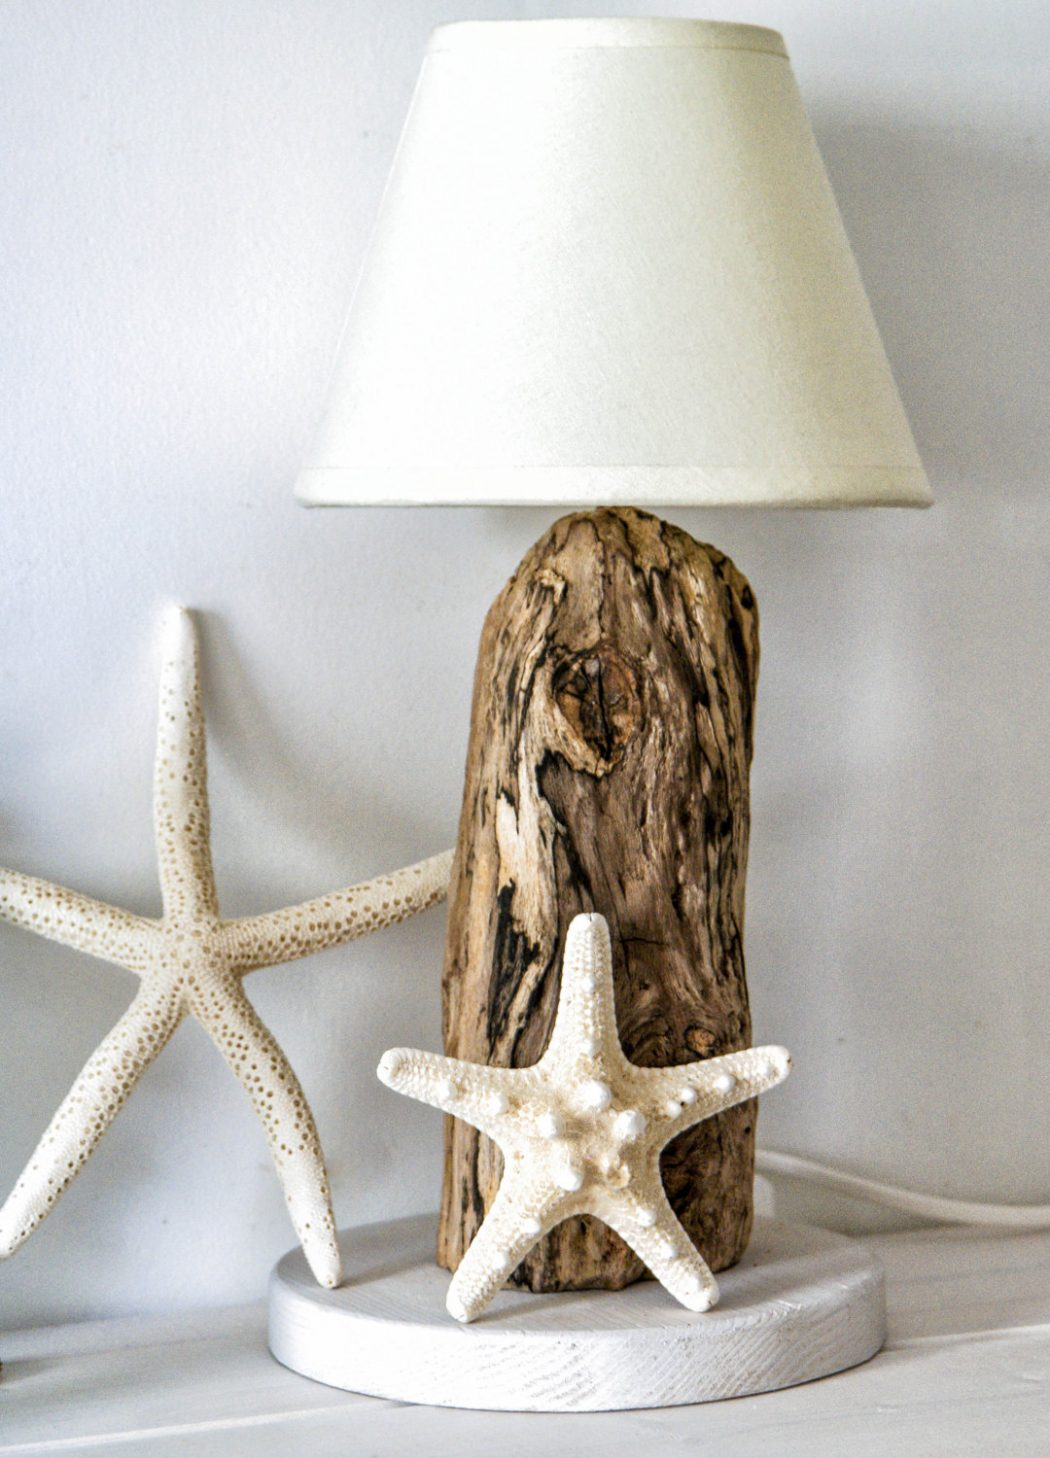 Handmade Wooden Lamps : Do you like to have a handmade wooden lamp pouted